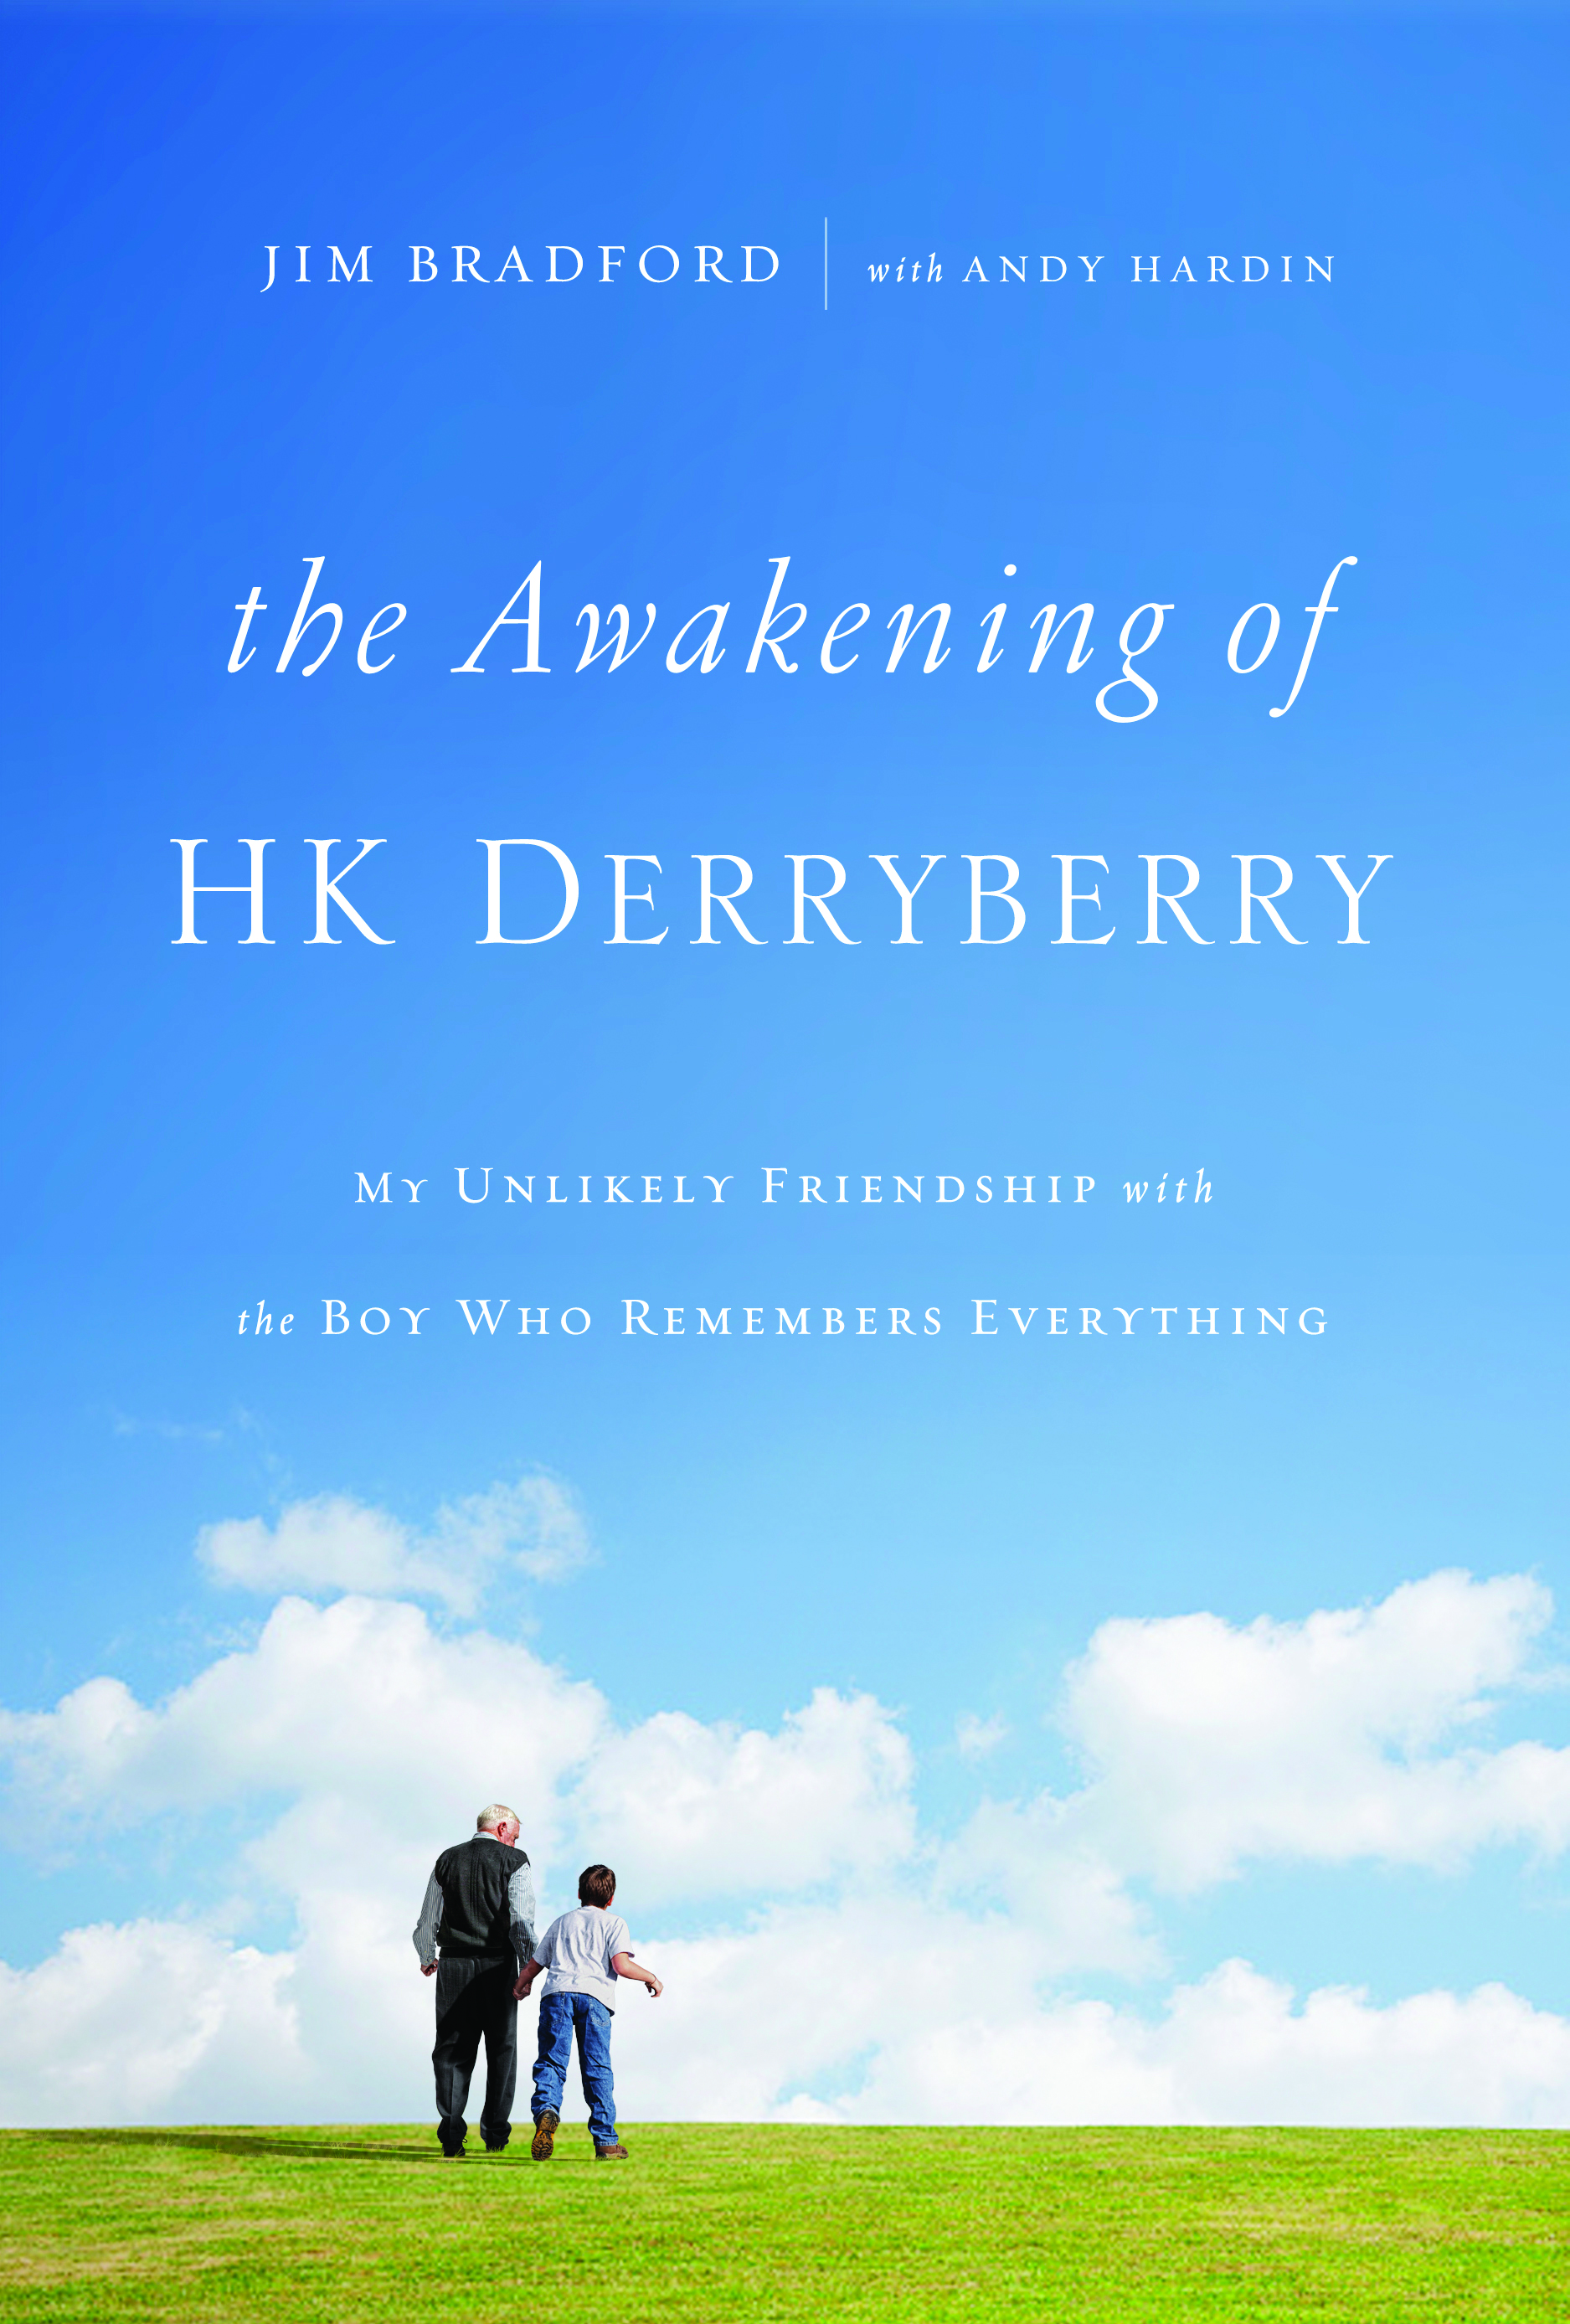 The Awakening of HK Derryberry book cover